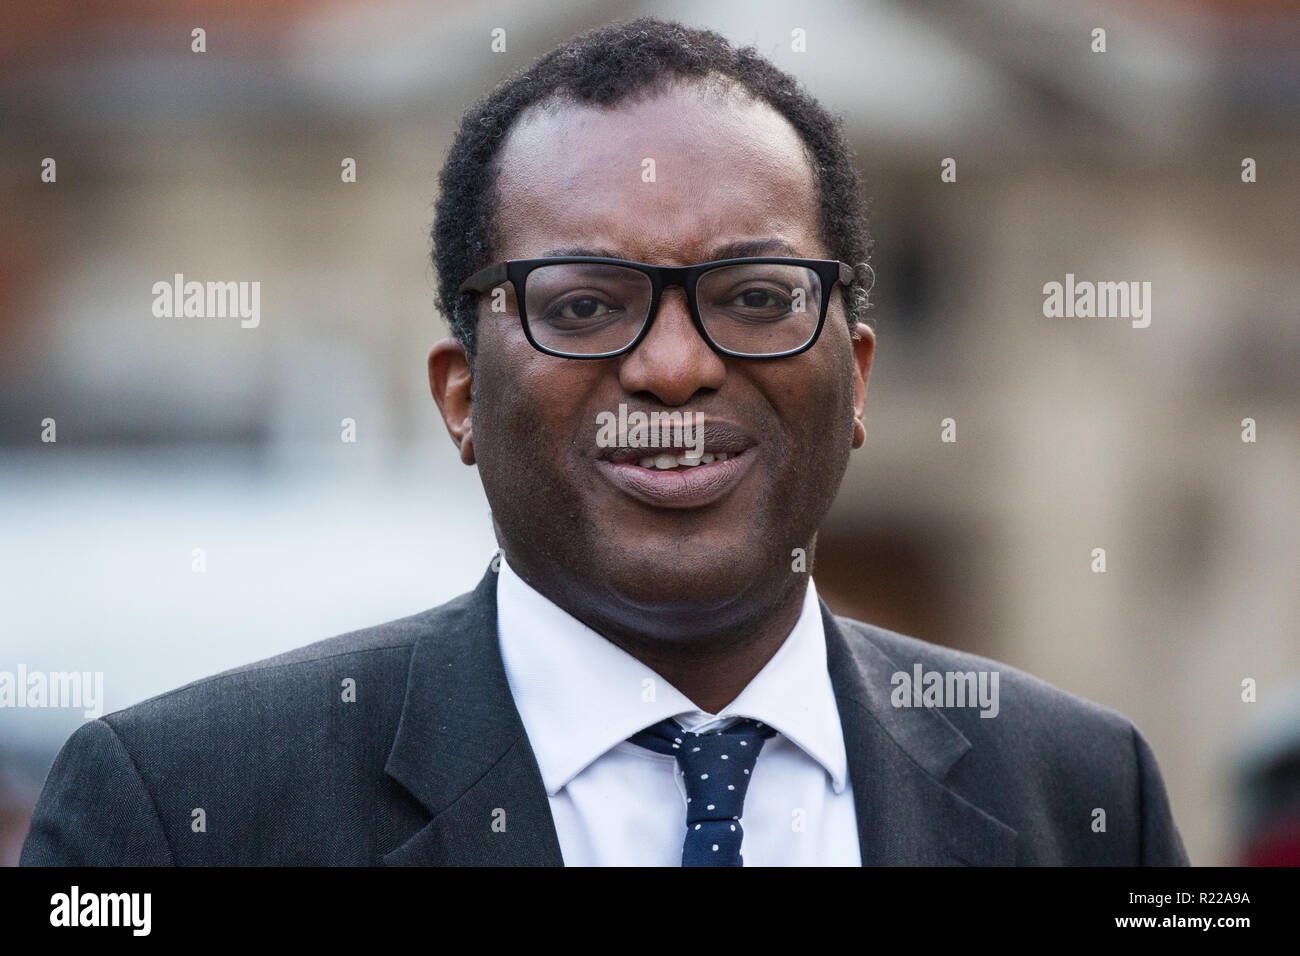 Kwasi Kwarteng High Resolution Stock Photography and Images - Alamy